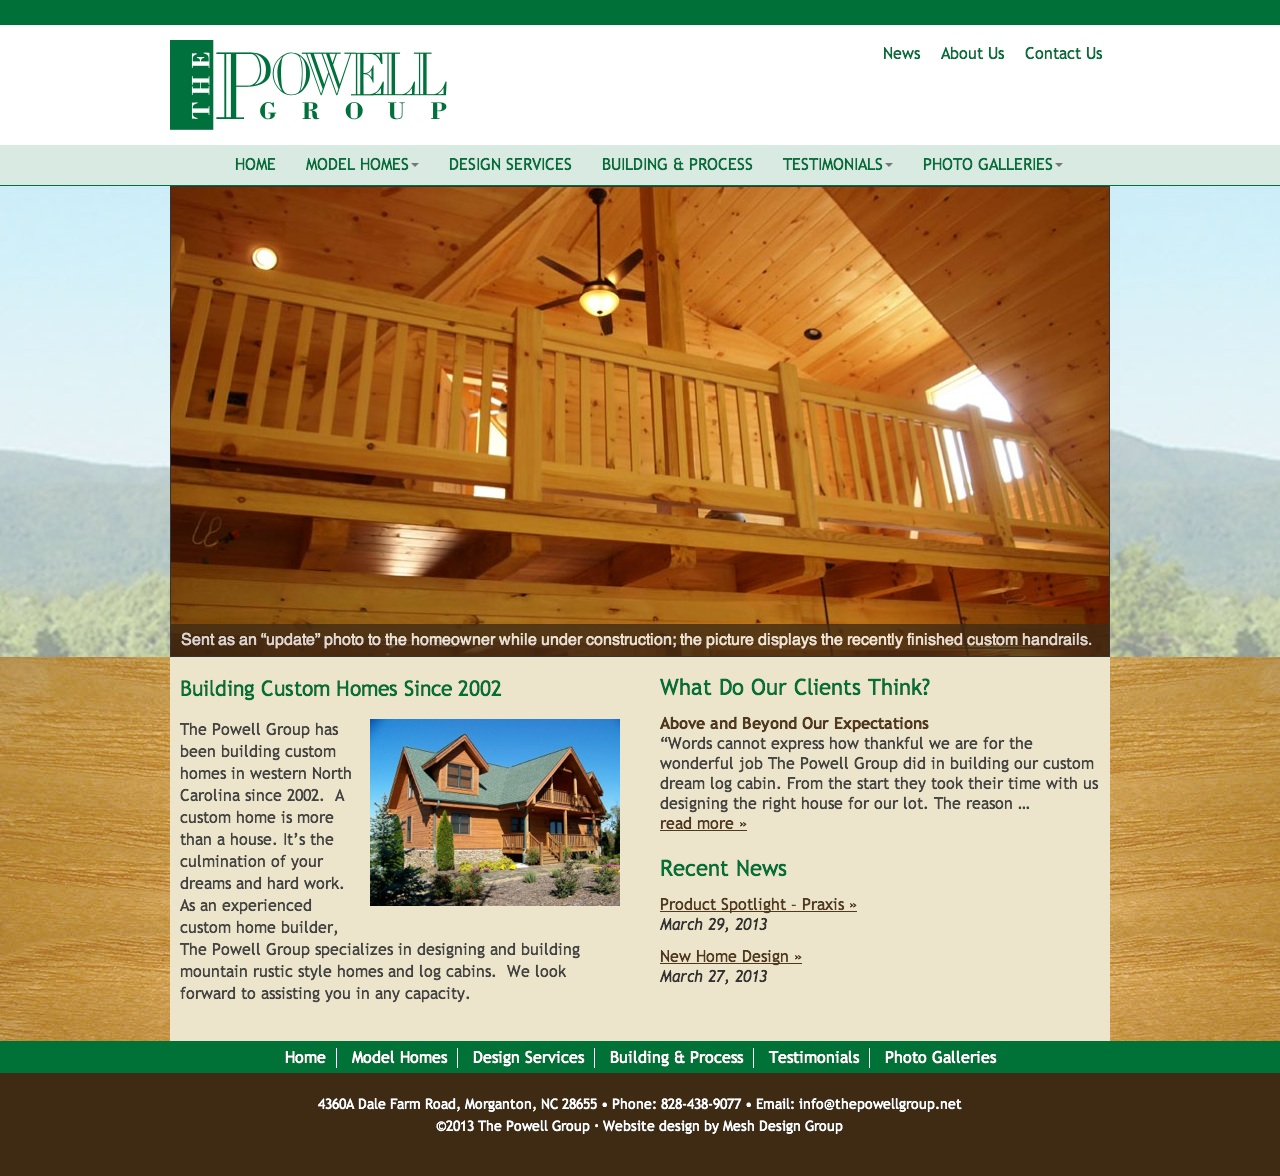 Website design for The Powell Group